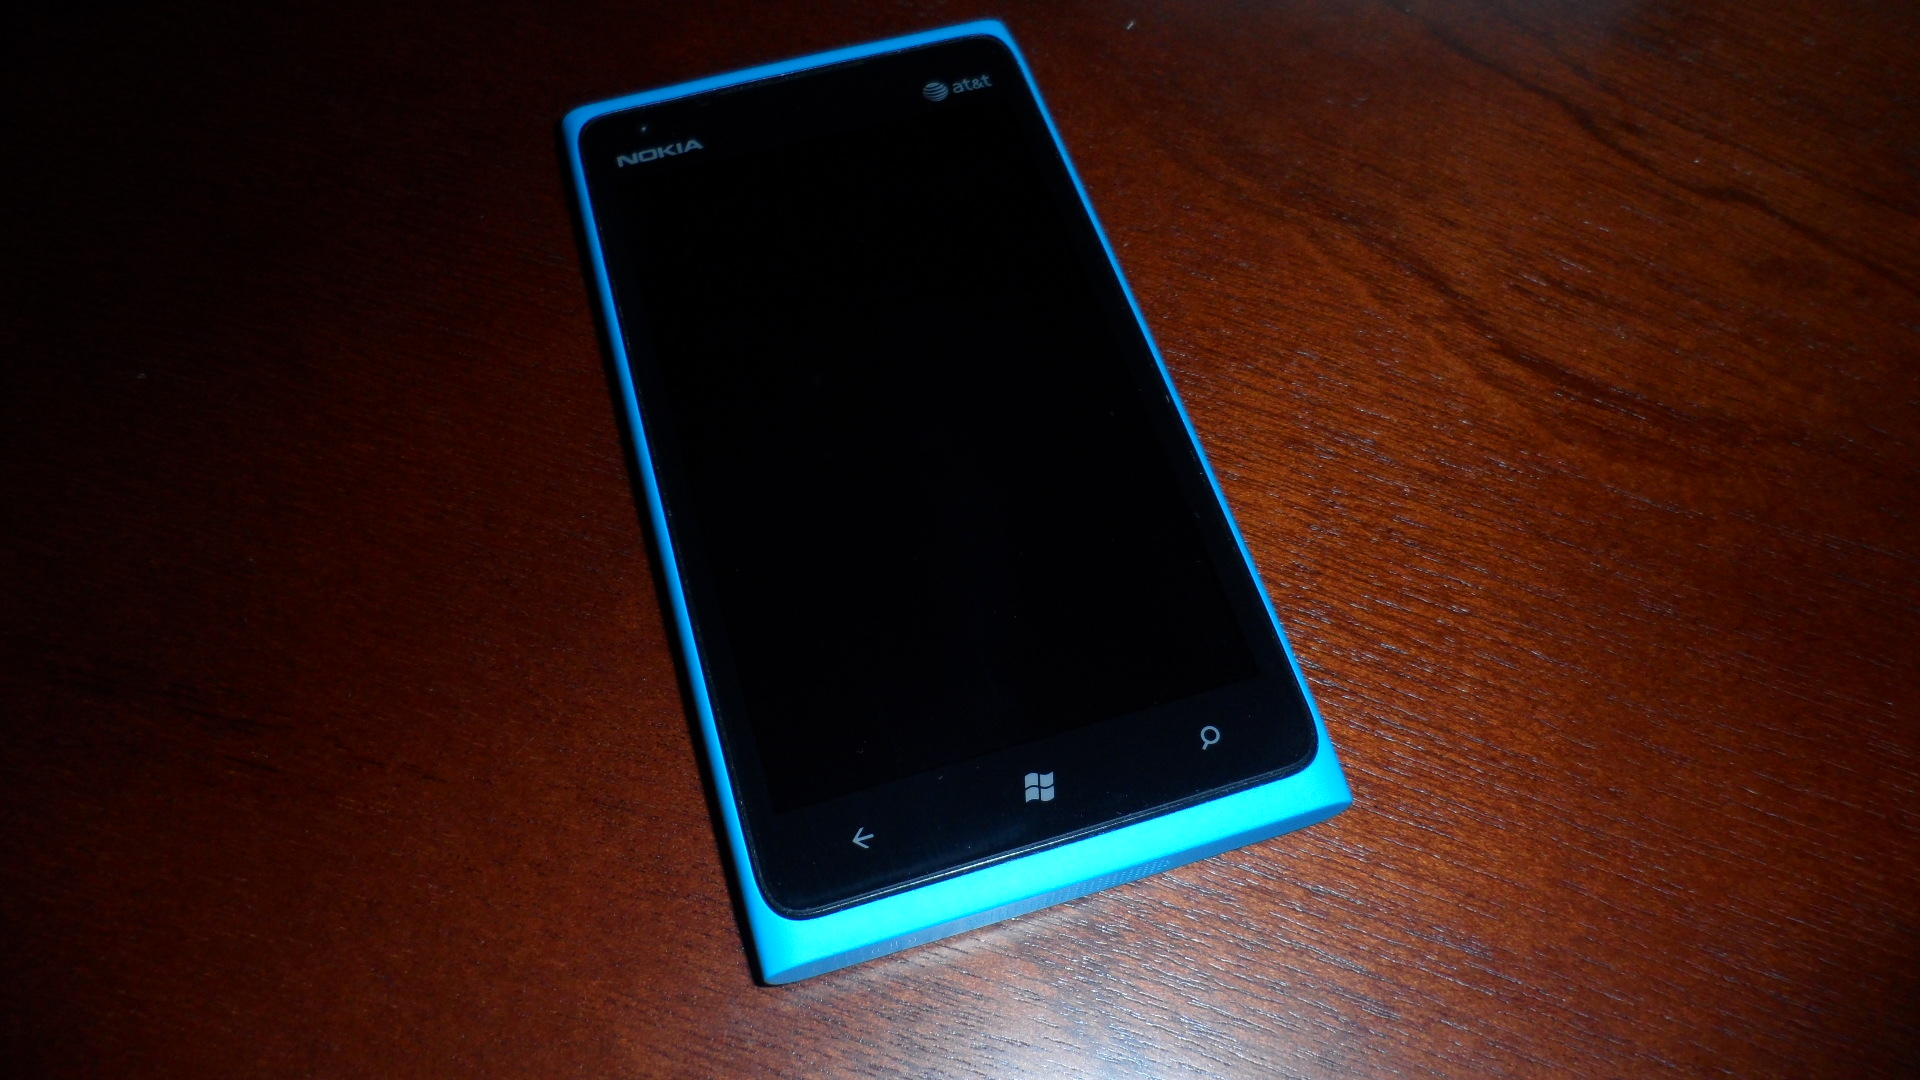 Nokia Lumia 900 in iridescent Cyan